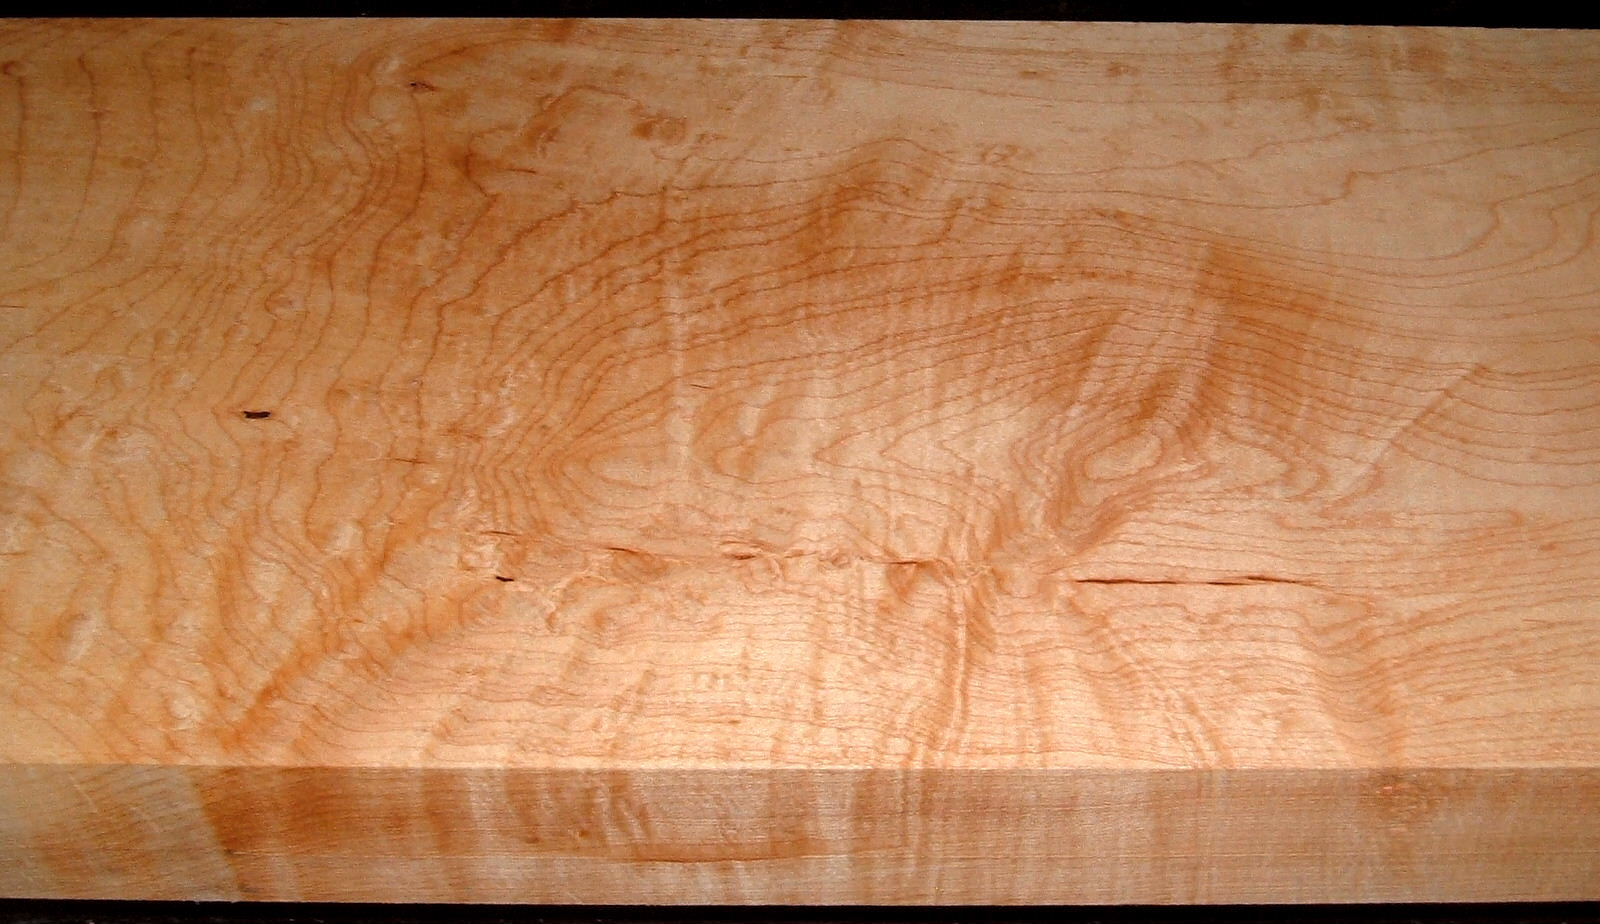 HM2007-107, 1-15/16x10-1/2x41, 8/4 Blistered Figured Hard Maple